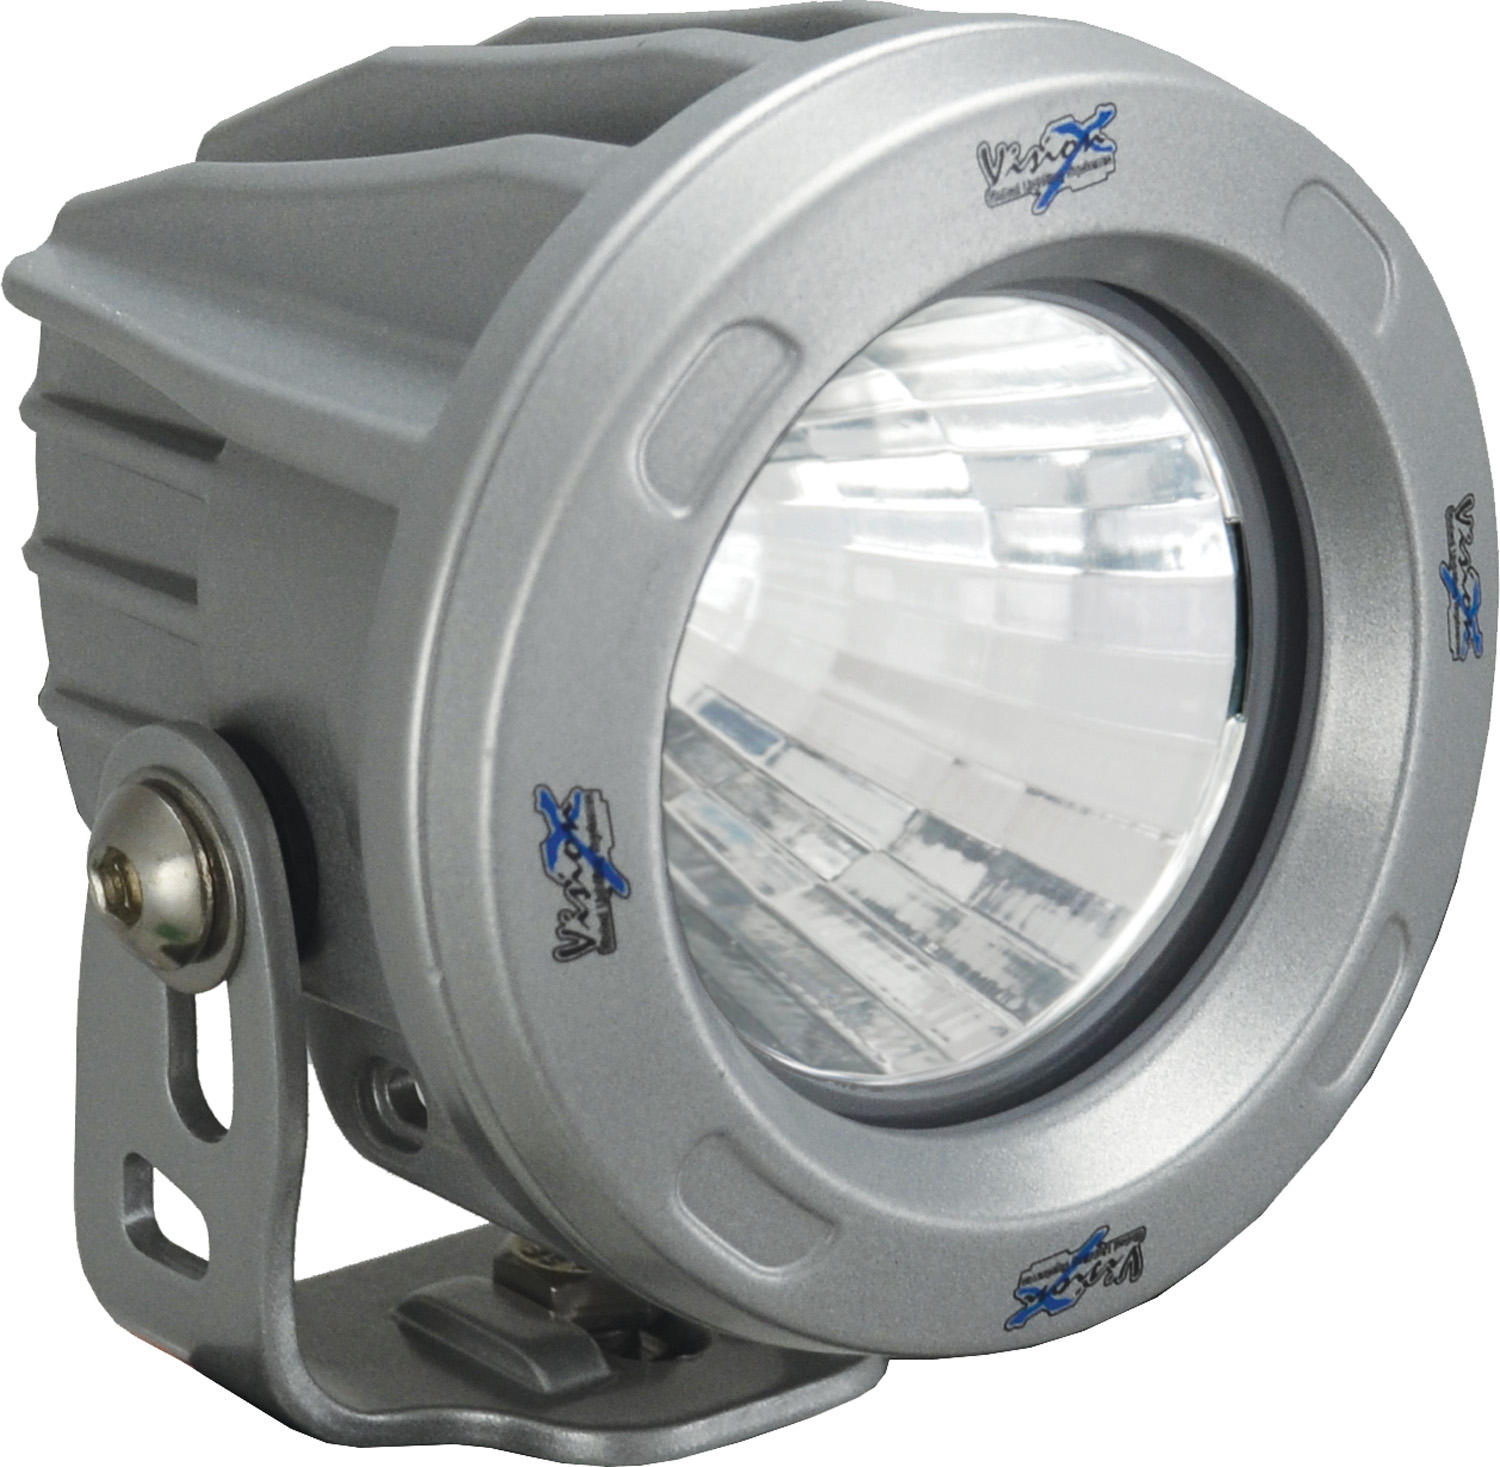 OPTIMUS ROUND SILVER 1 10W LED 60? FLOOD